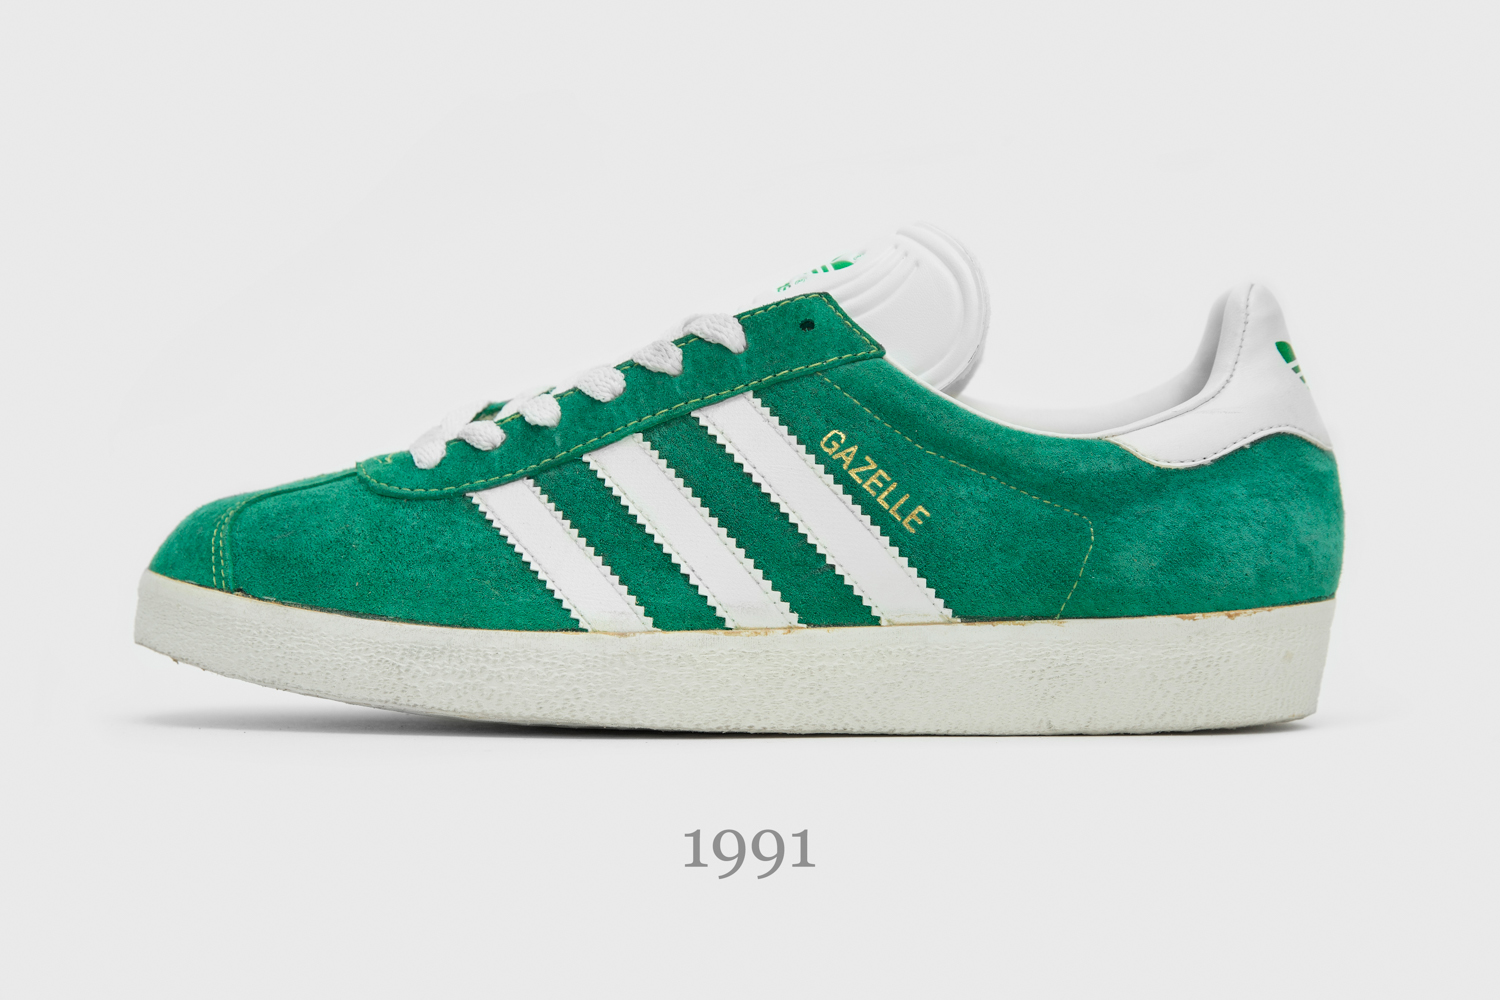 size_HQ_Lockup_adidas_originals_gazelle-7